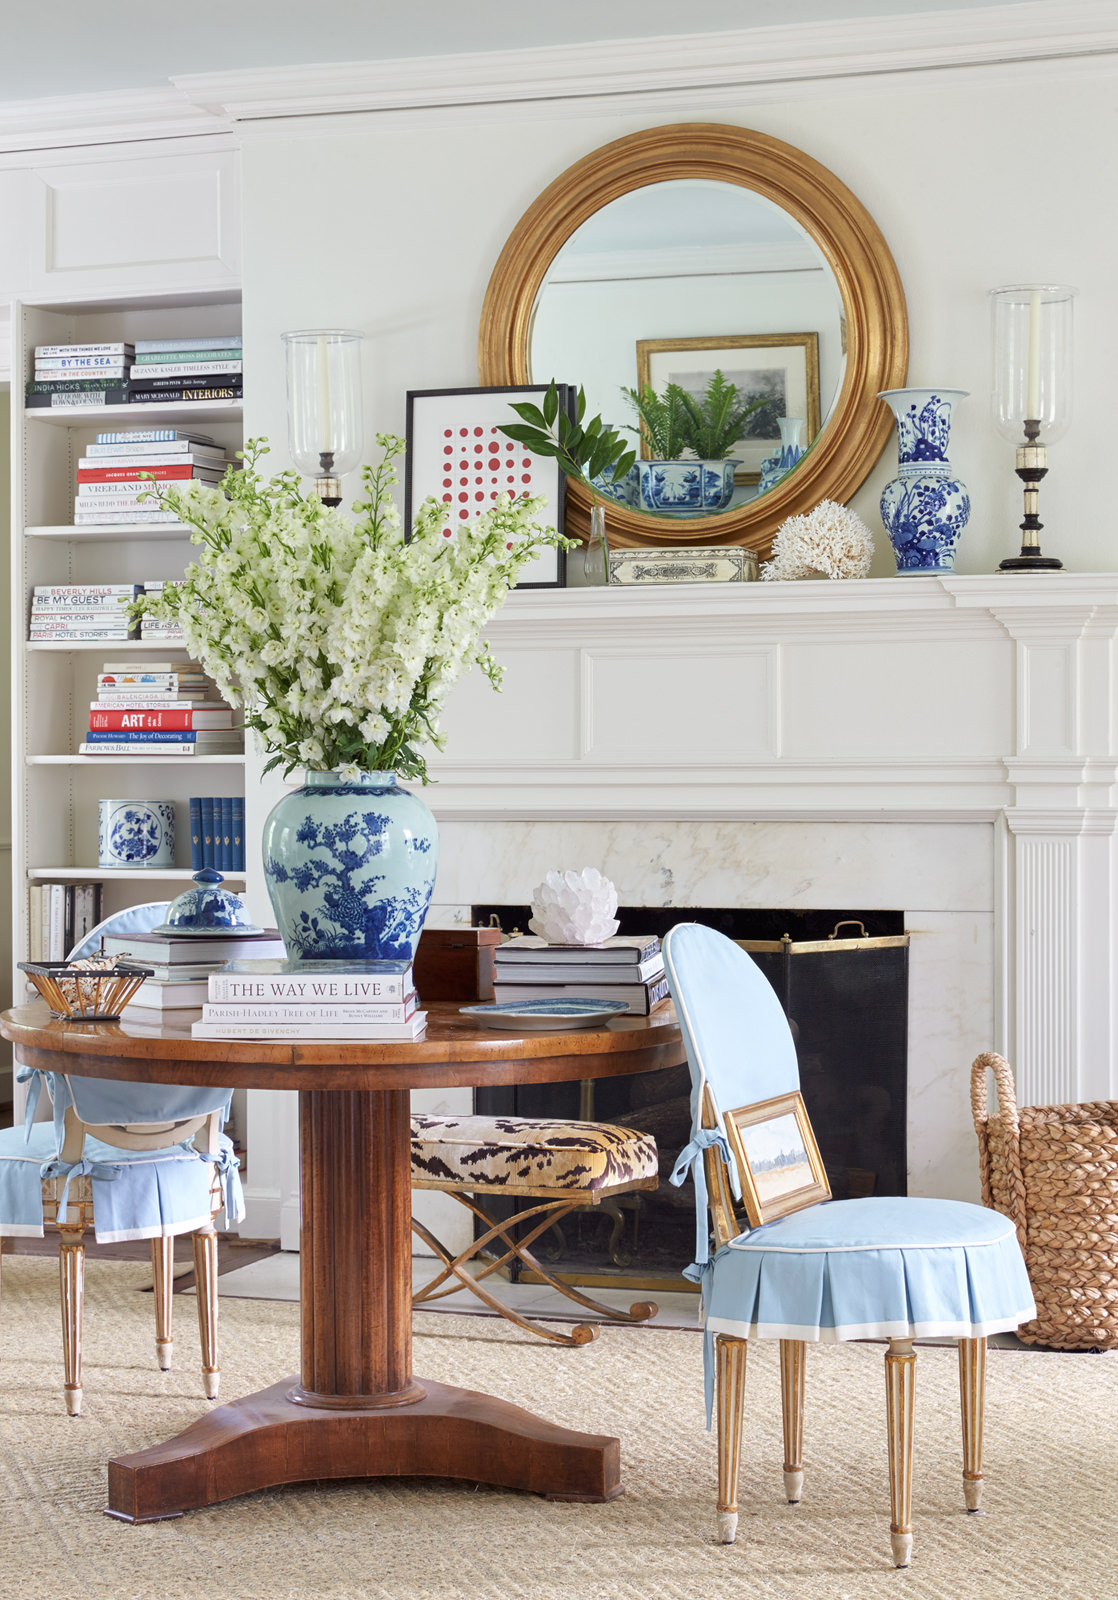 Décor Inspiration | At Home With: Interior Designer Sarah Bartholomew, Part 2